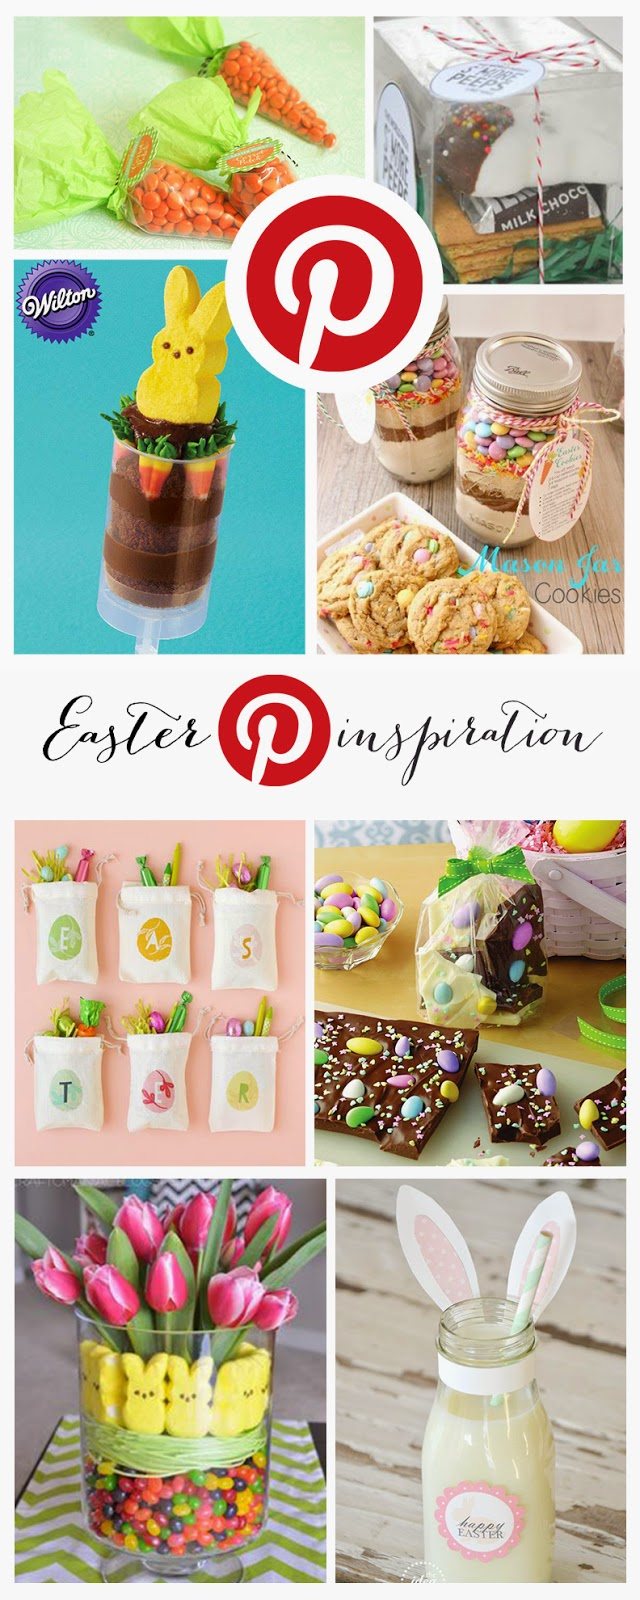 Easter inspirational ideas from our Pinterest board | Creative Bag